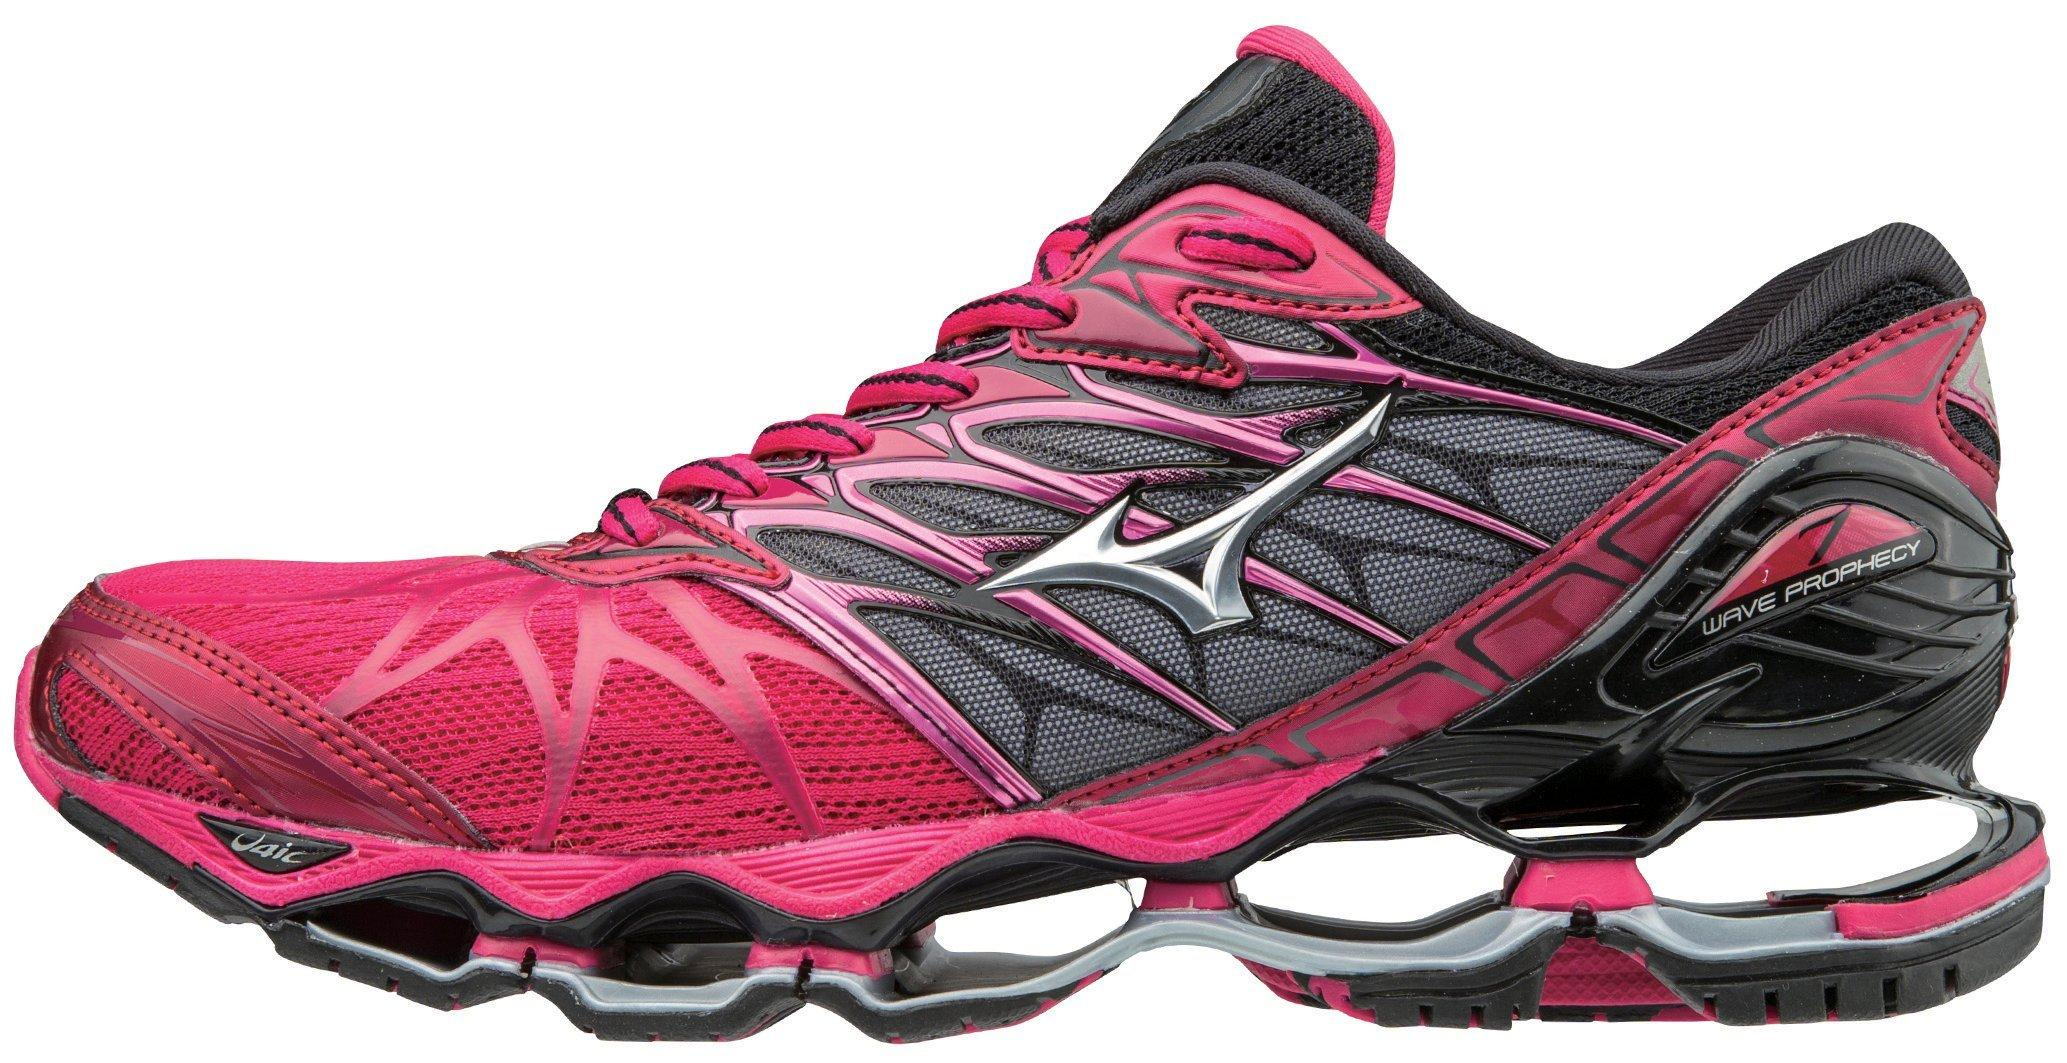 Mizuno Womens Running Shoes - Women's Wave Prophecy 7 Running Shoe - 410969